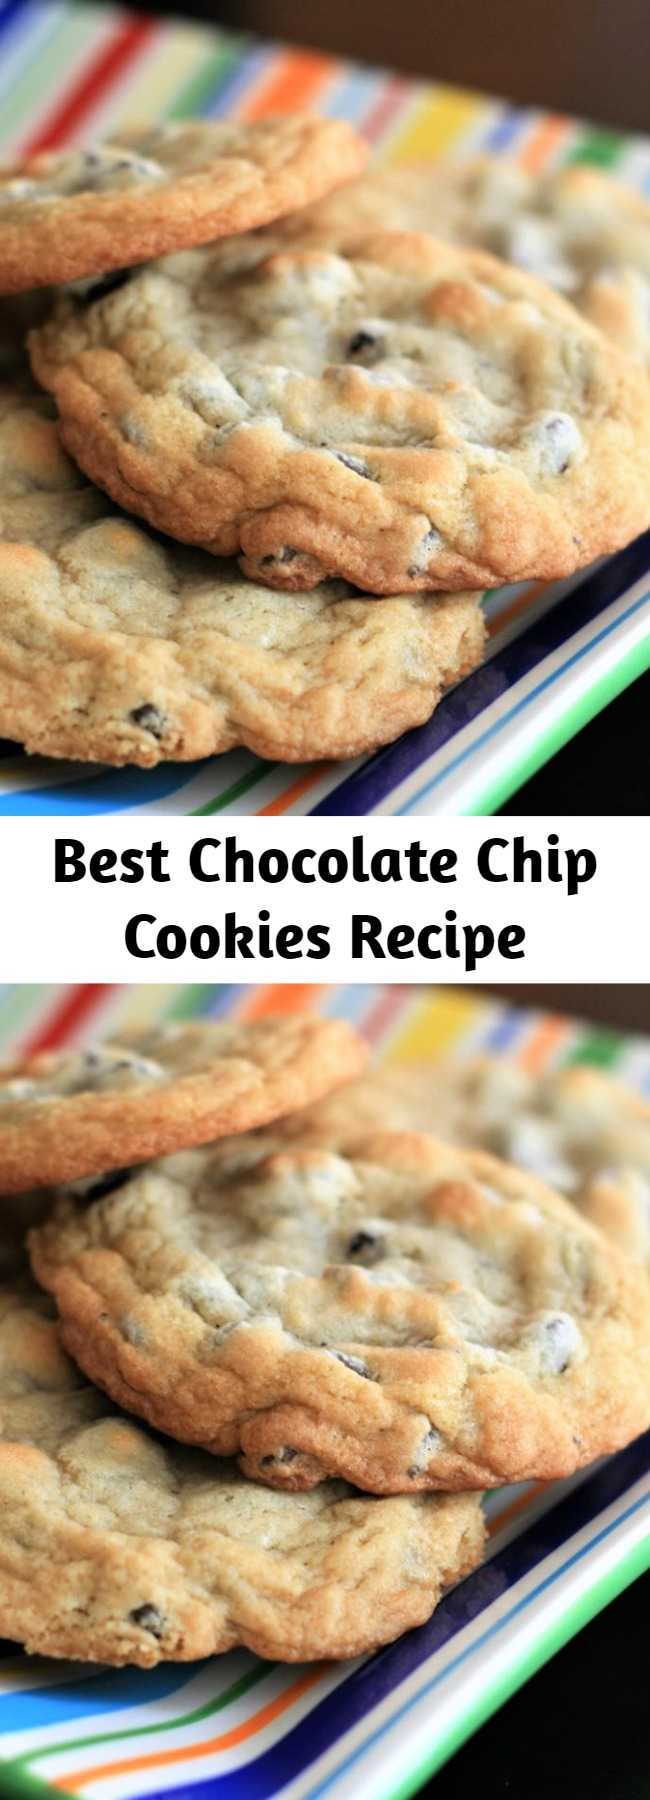 Best Chocolate Chip Cookies Recipe - This is the perfect chocolate chip cookie!! Crispy on the outside and chewy on the inside!!